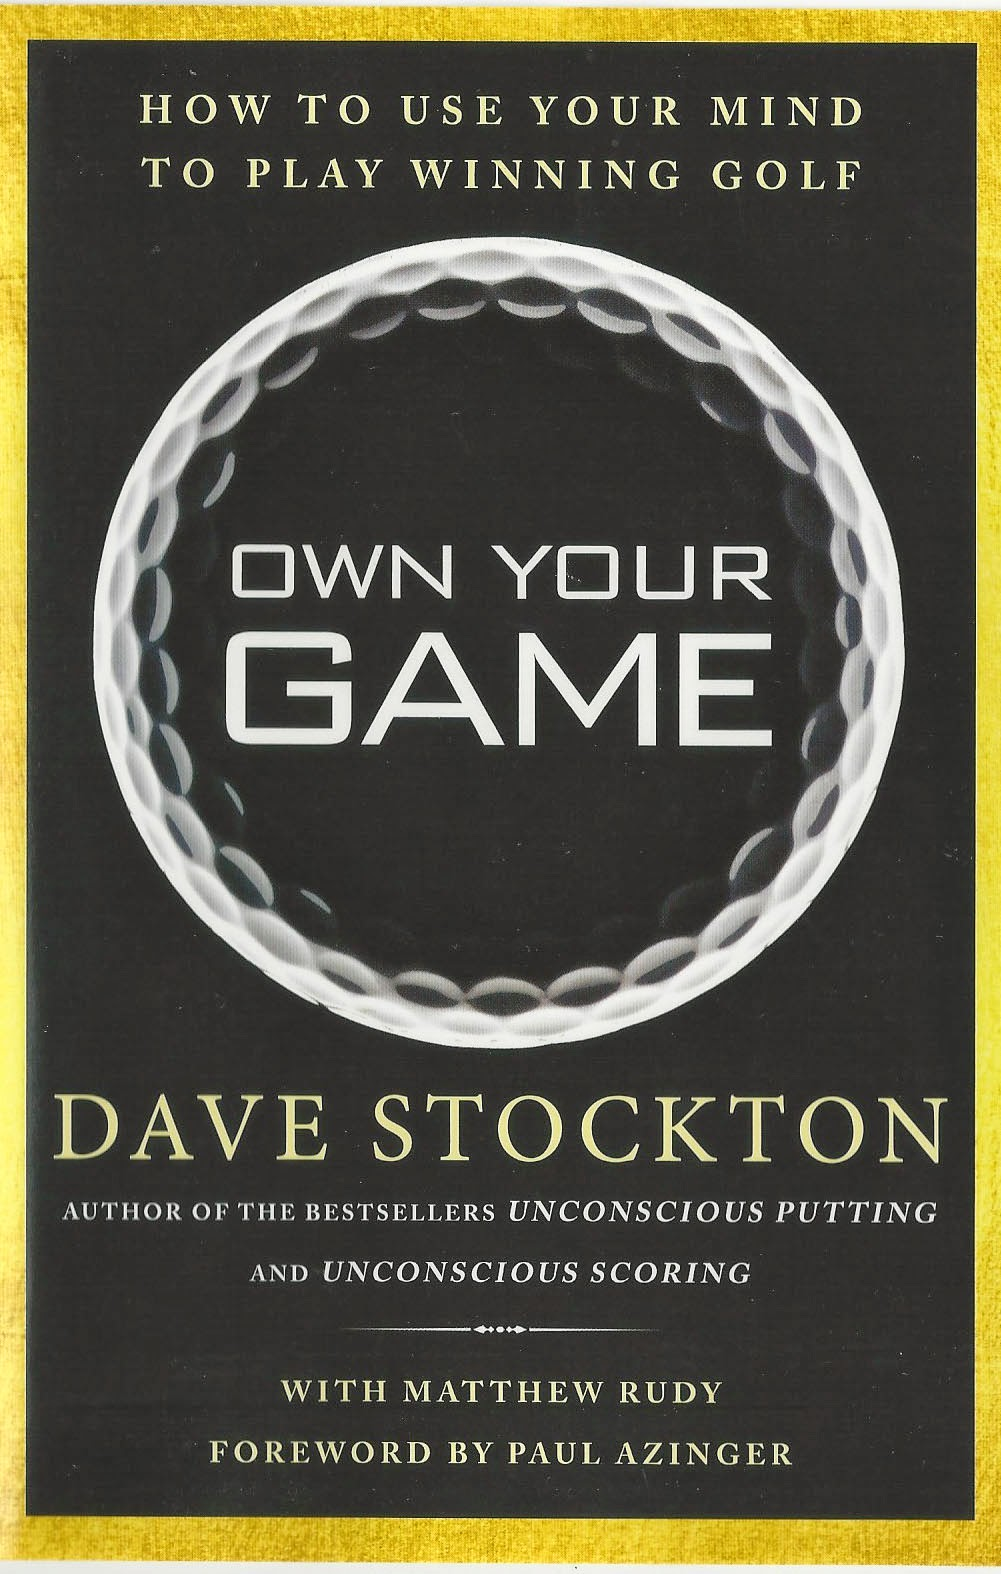 Own Your Game - Dave Stockton